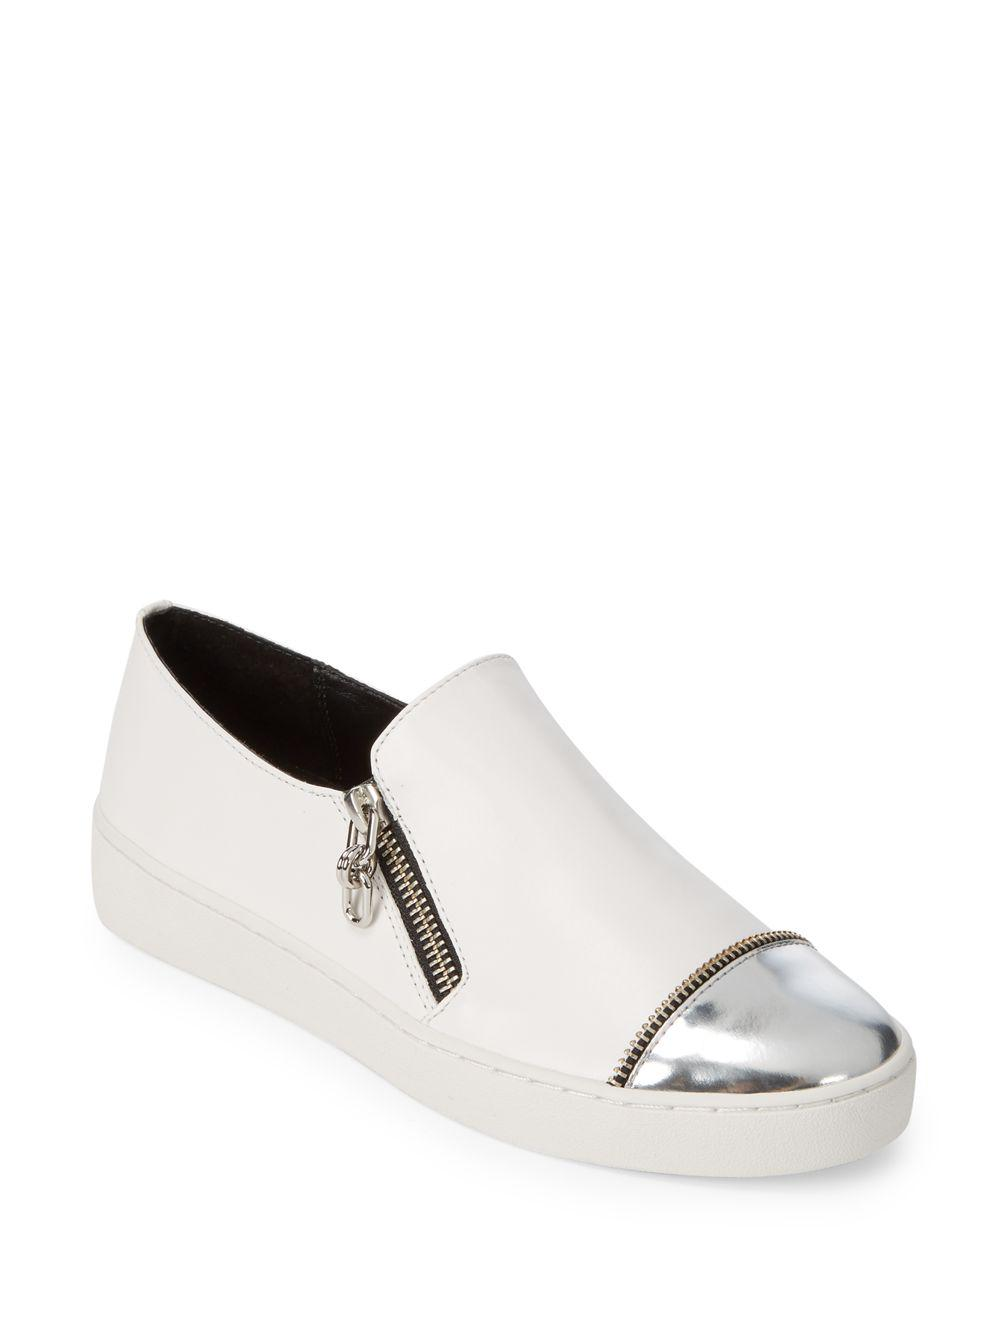 5cf6880917e Michael Kors Grayson Slip-on Leather Sneakers in White - Lyst